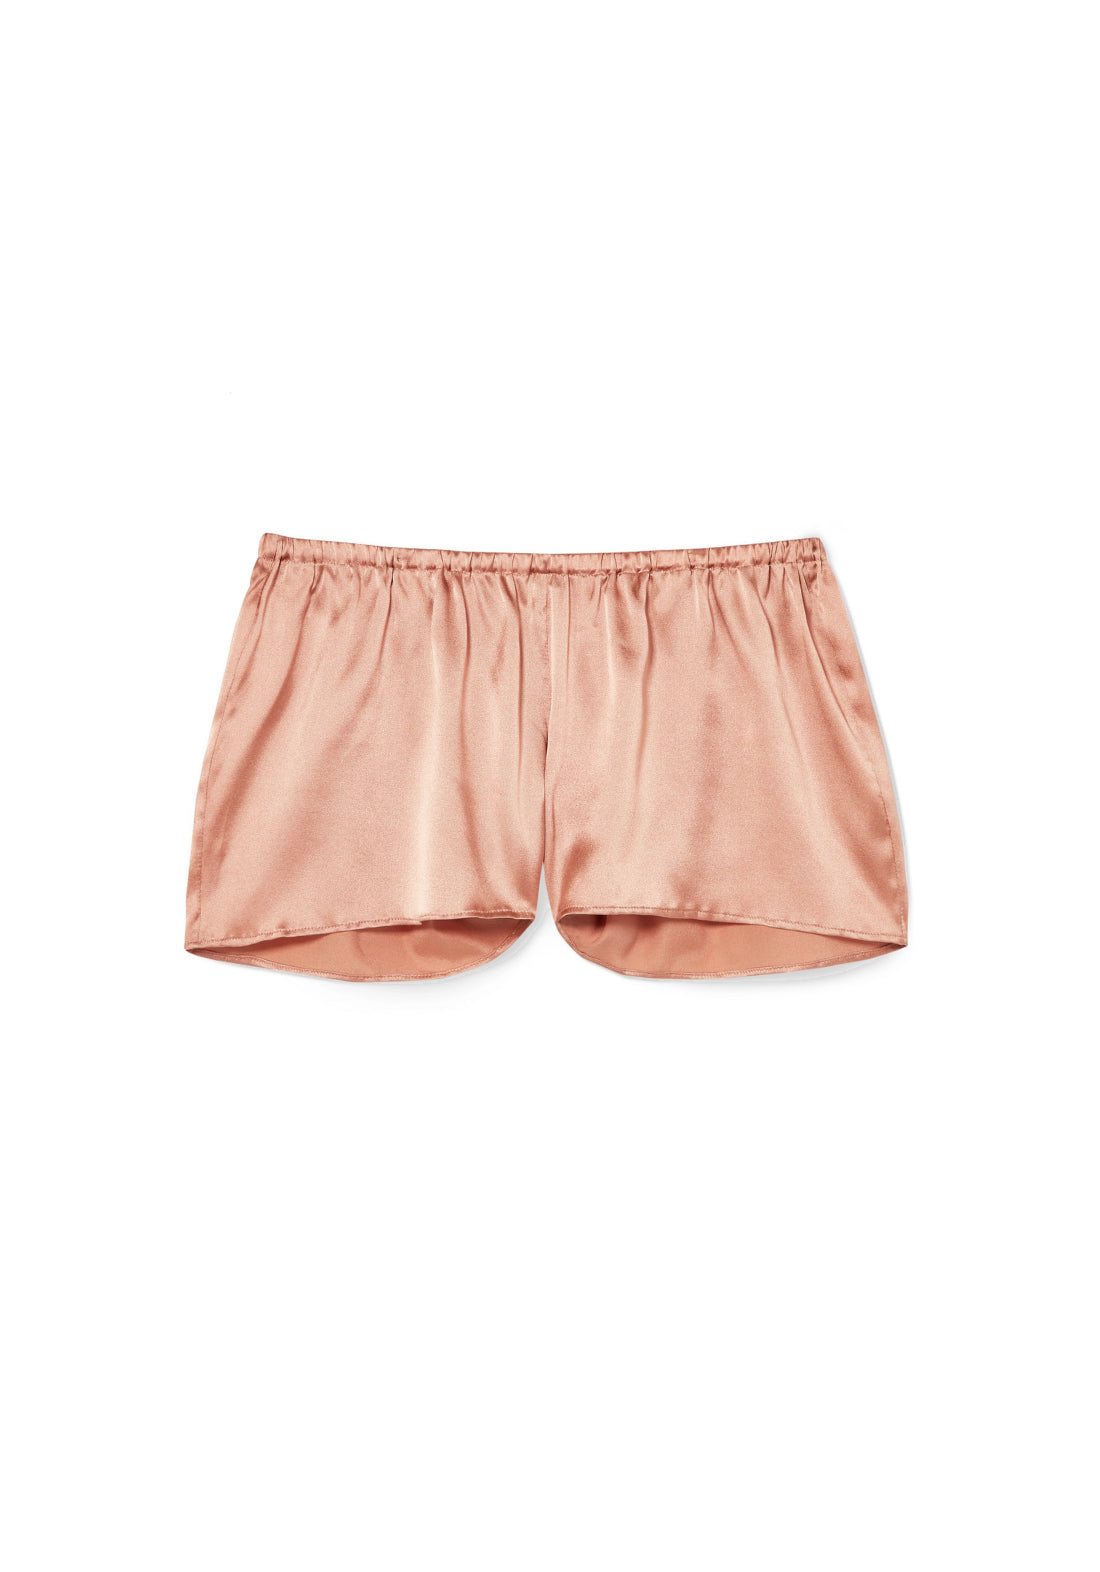 Desert Rose Pyjama Shorts in Rose Gold